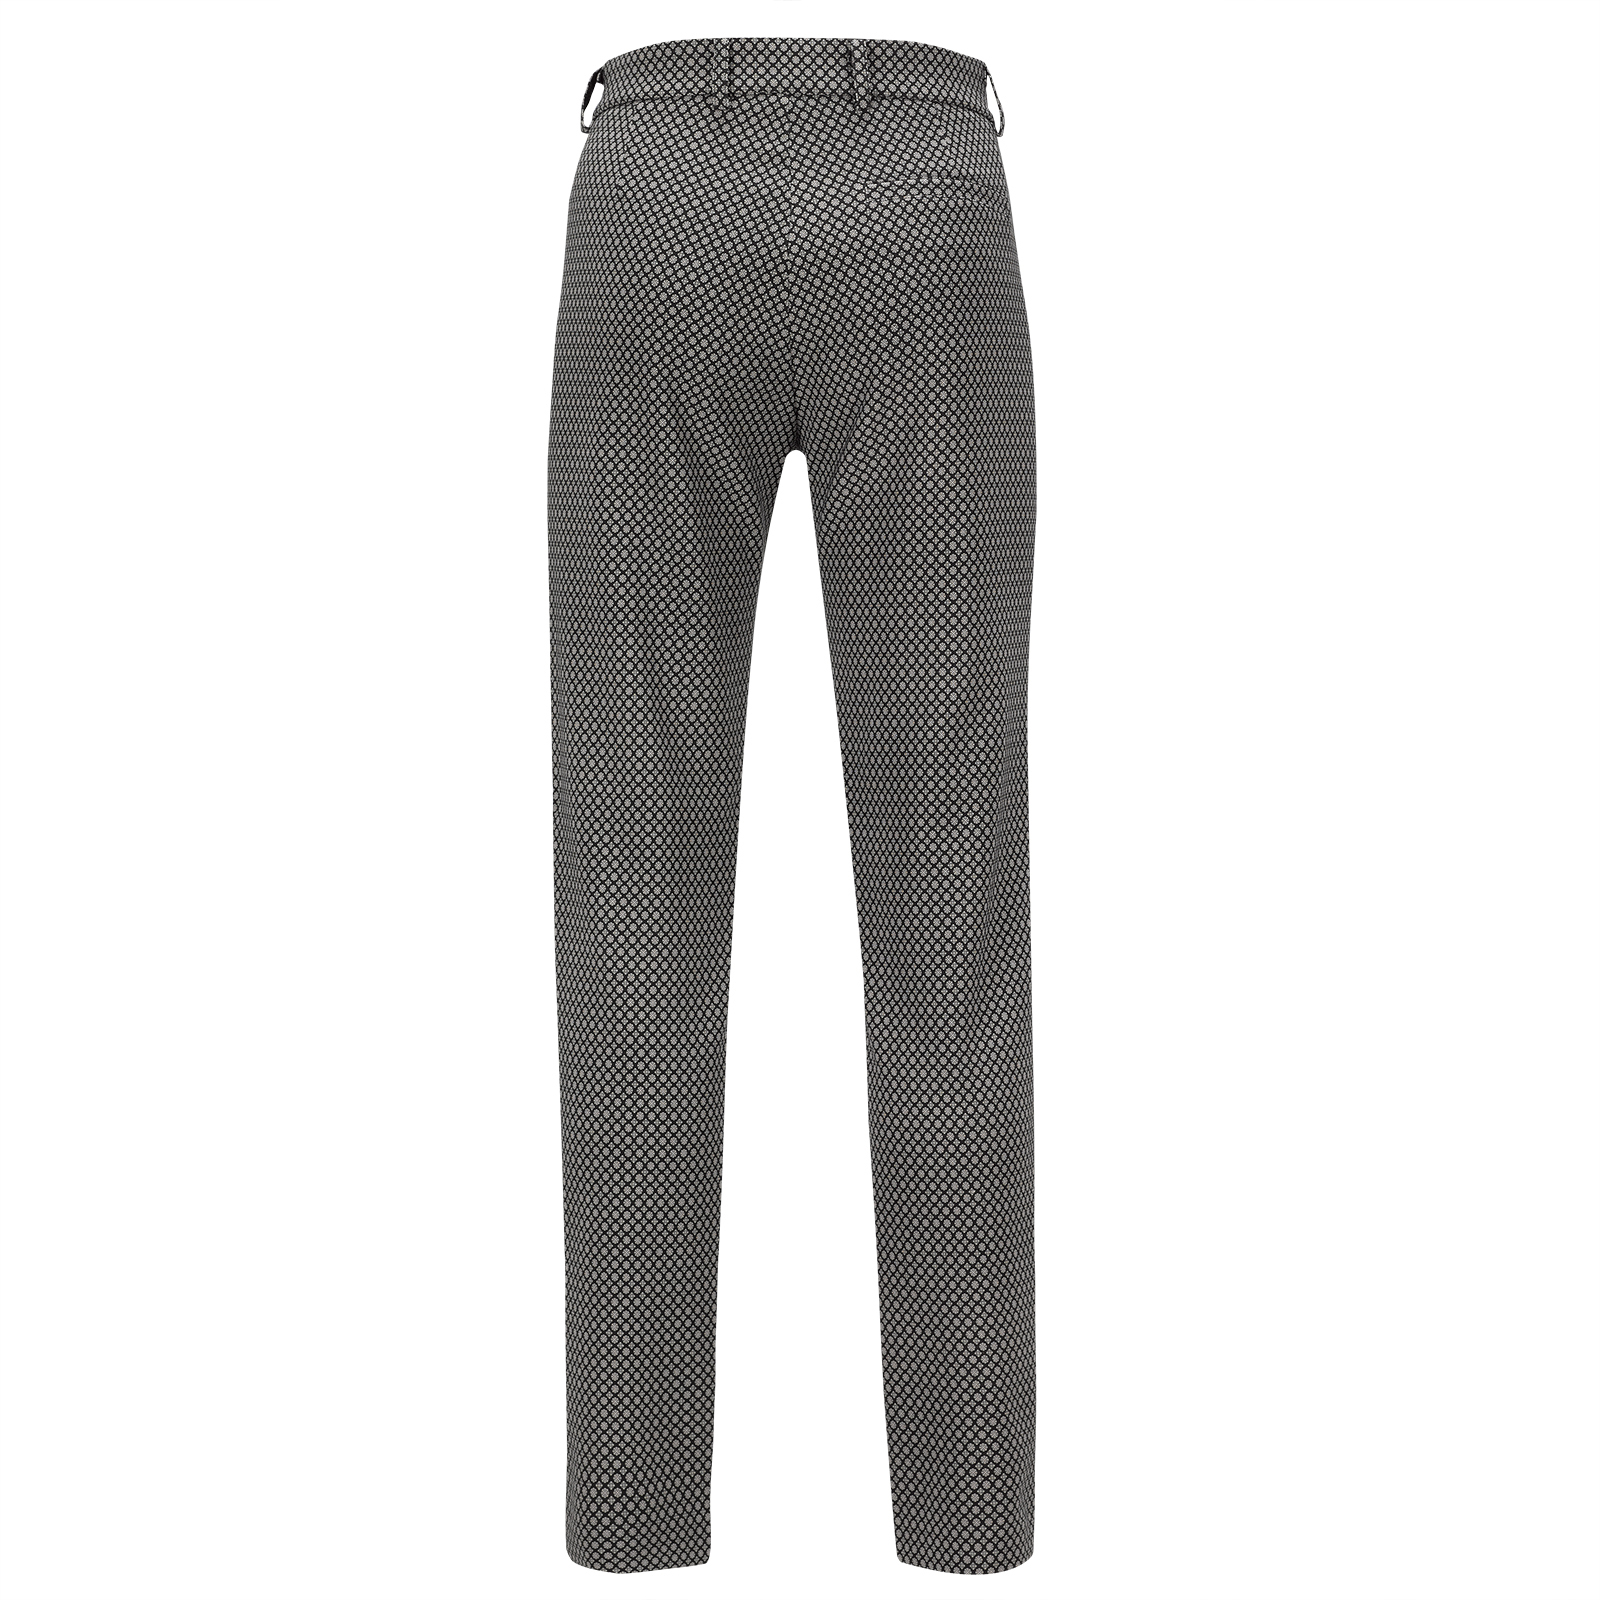 7/8 Damen Winter Power Golfhose aus 4-Way-Stretch mit modischem Printmuster